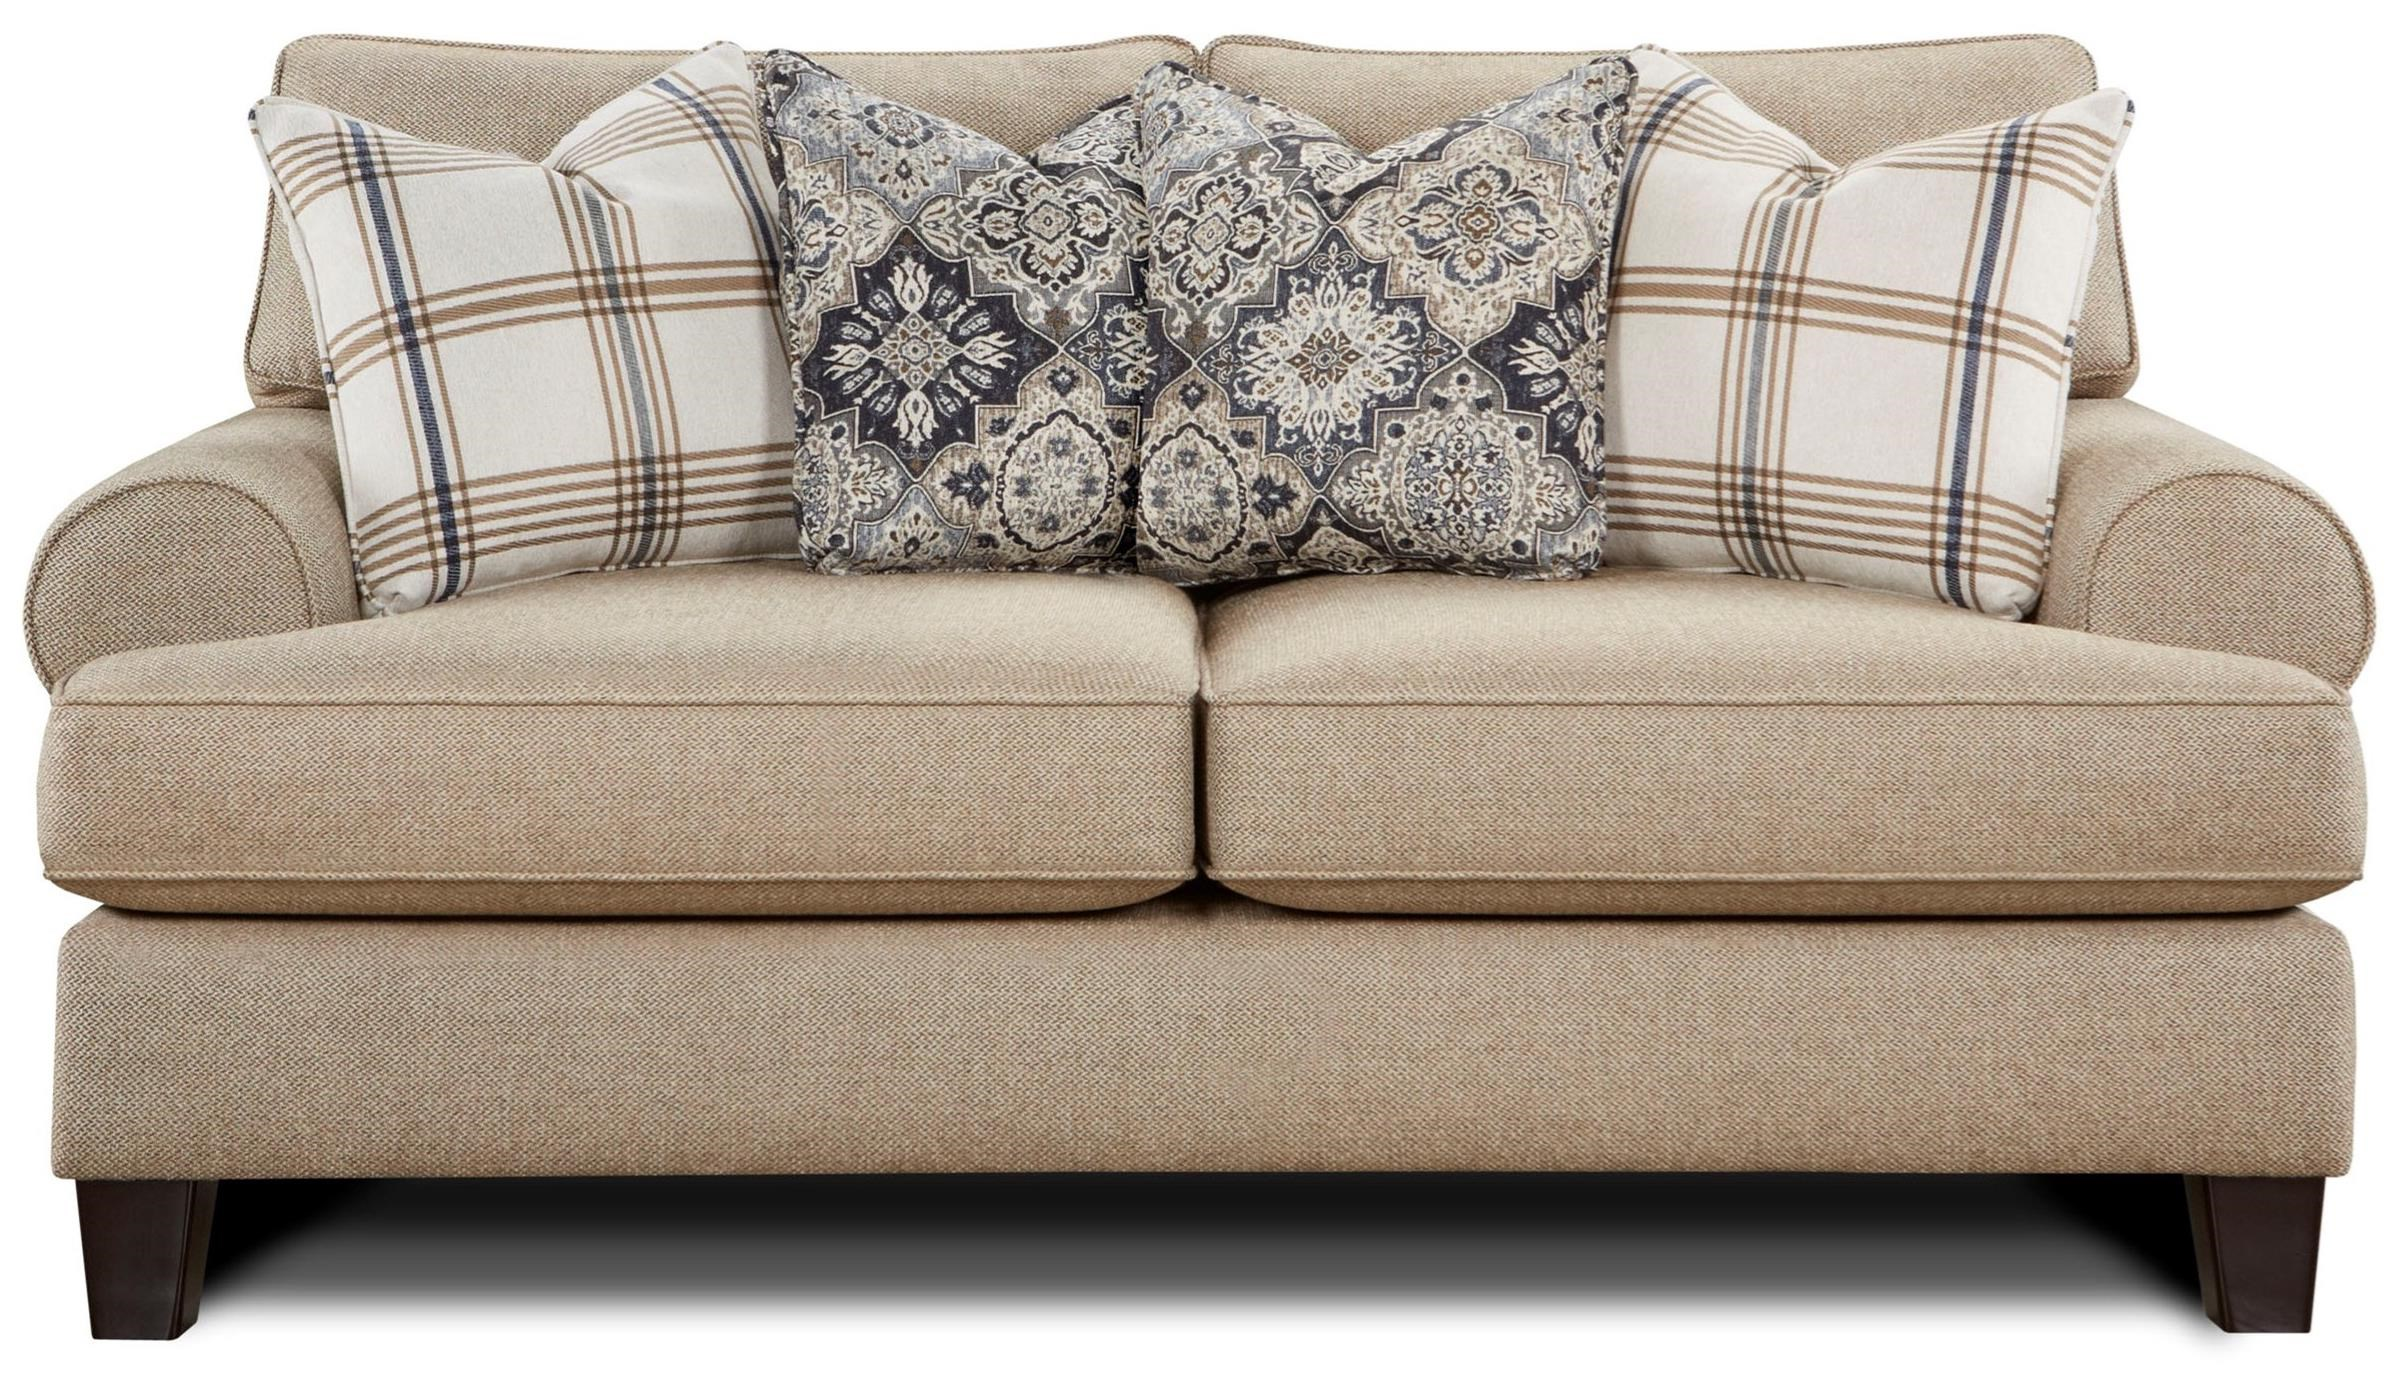 4200 Loveseat by FN at Lindy's Furniture Company